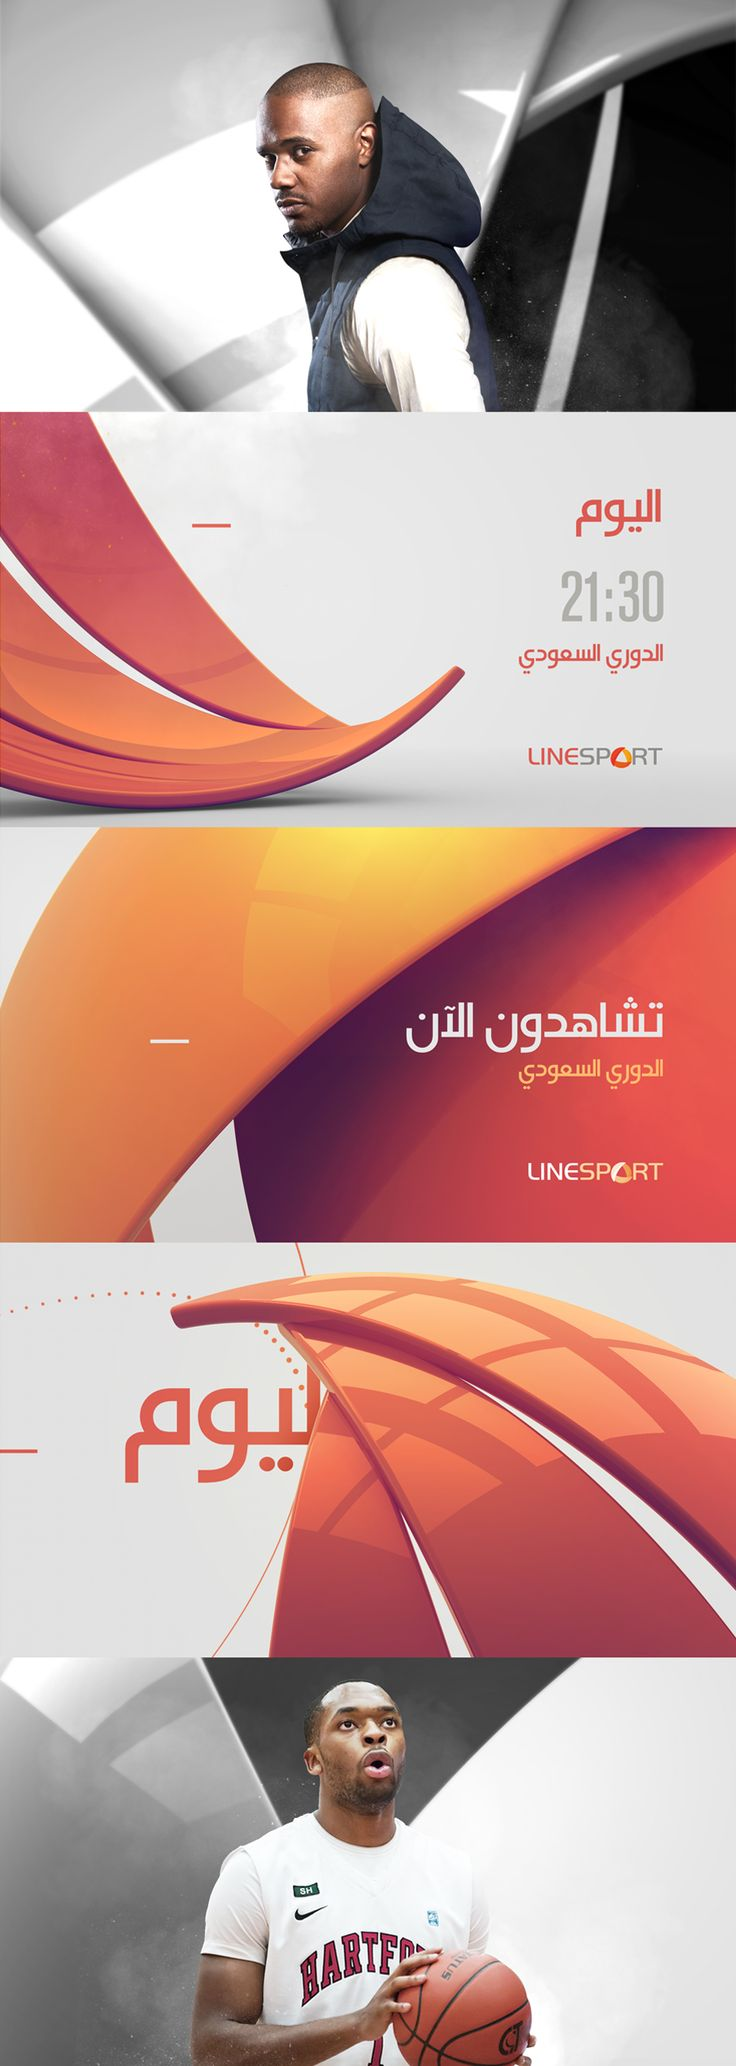 Line Sport - Carla Dasso. Motion graphics and broadcast graphic design. Tv channel branding styleframes and storyboarding. Sports graphics